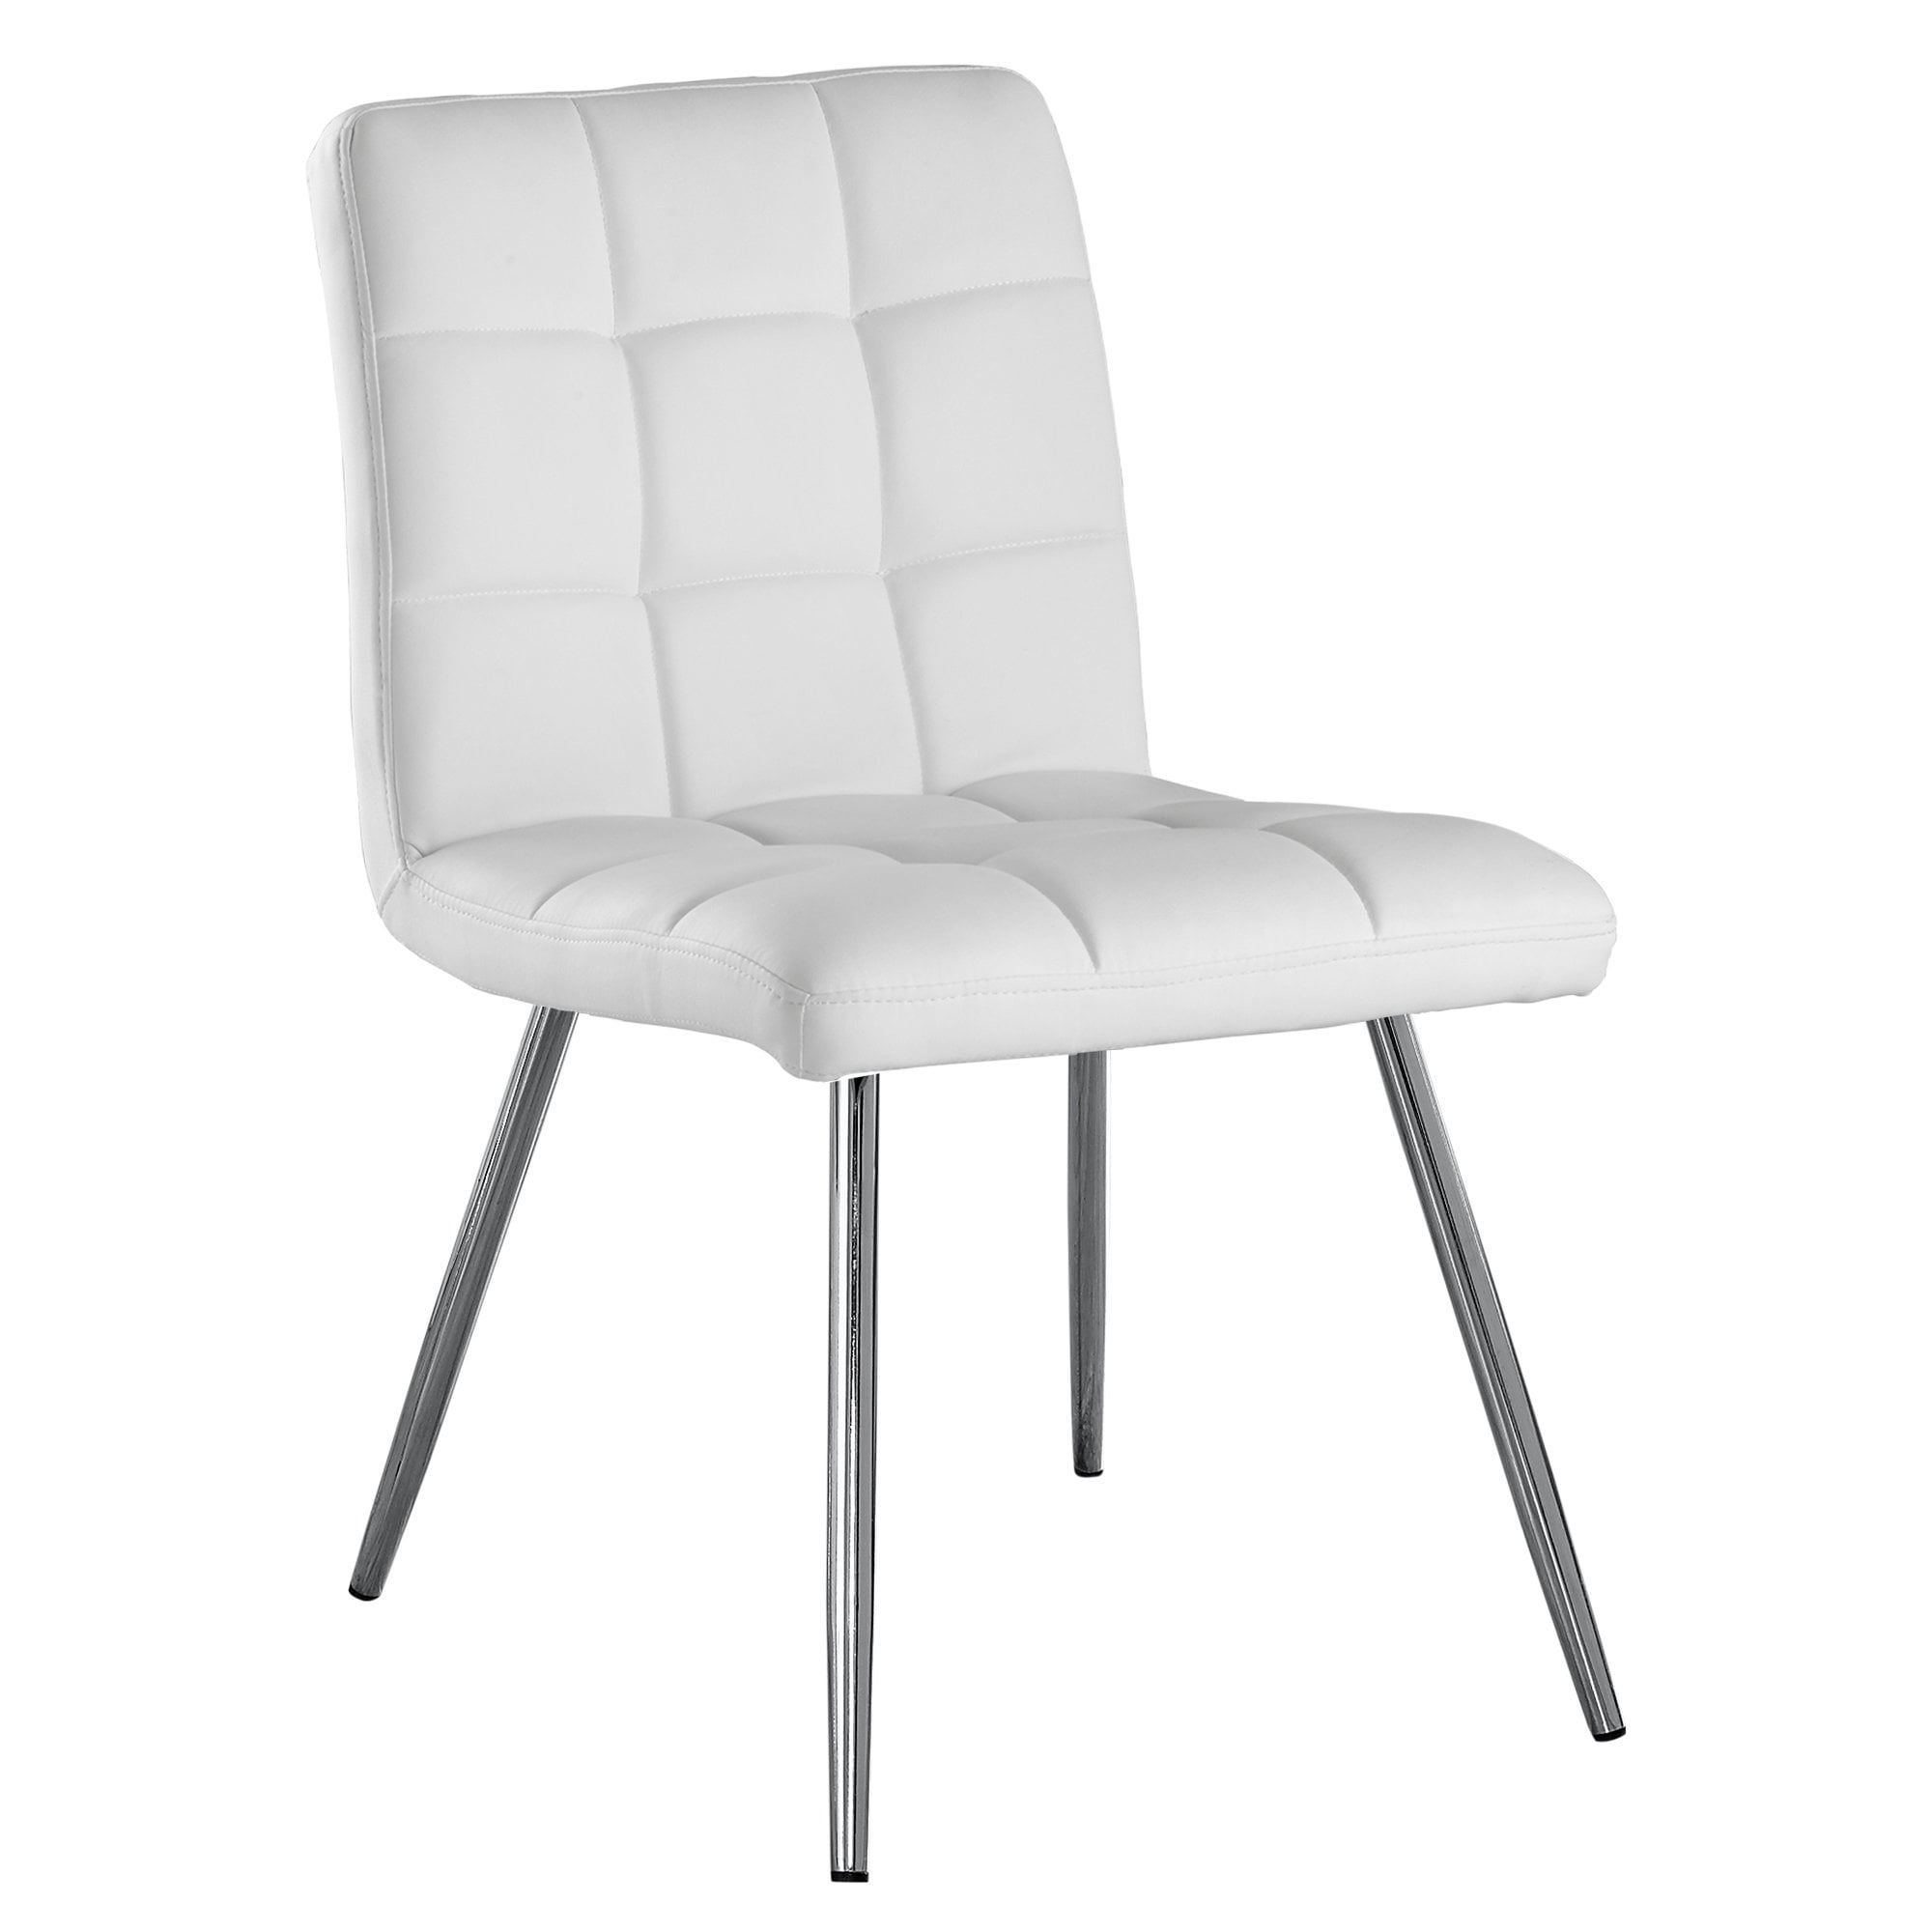 White Faux Leather Chrome Metal Dining Chair Set Of 2 On Sale Overstock 9672664